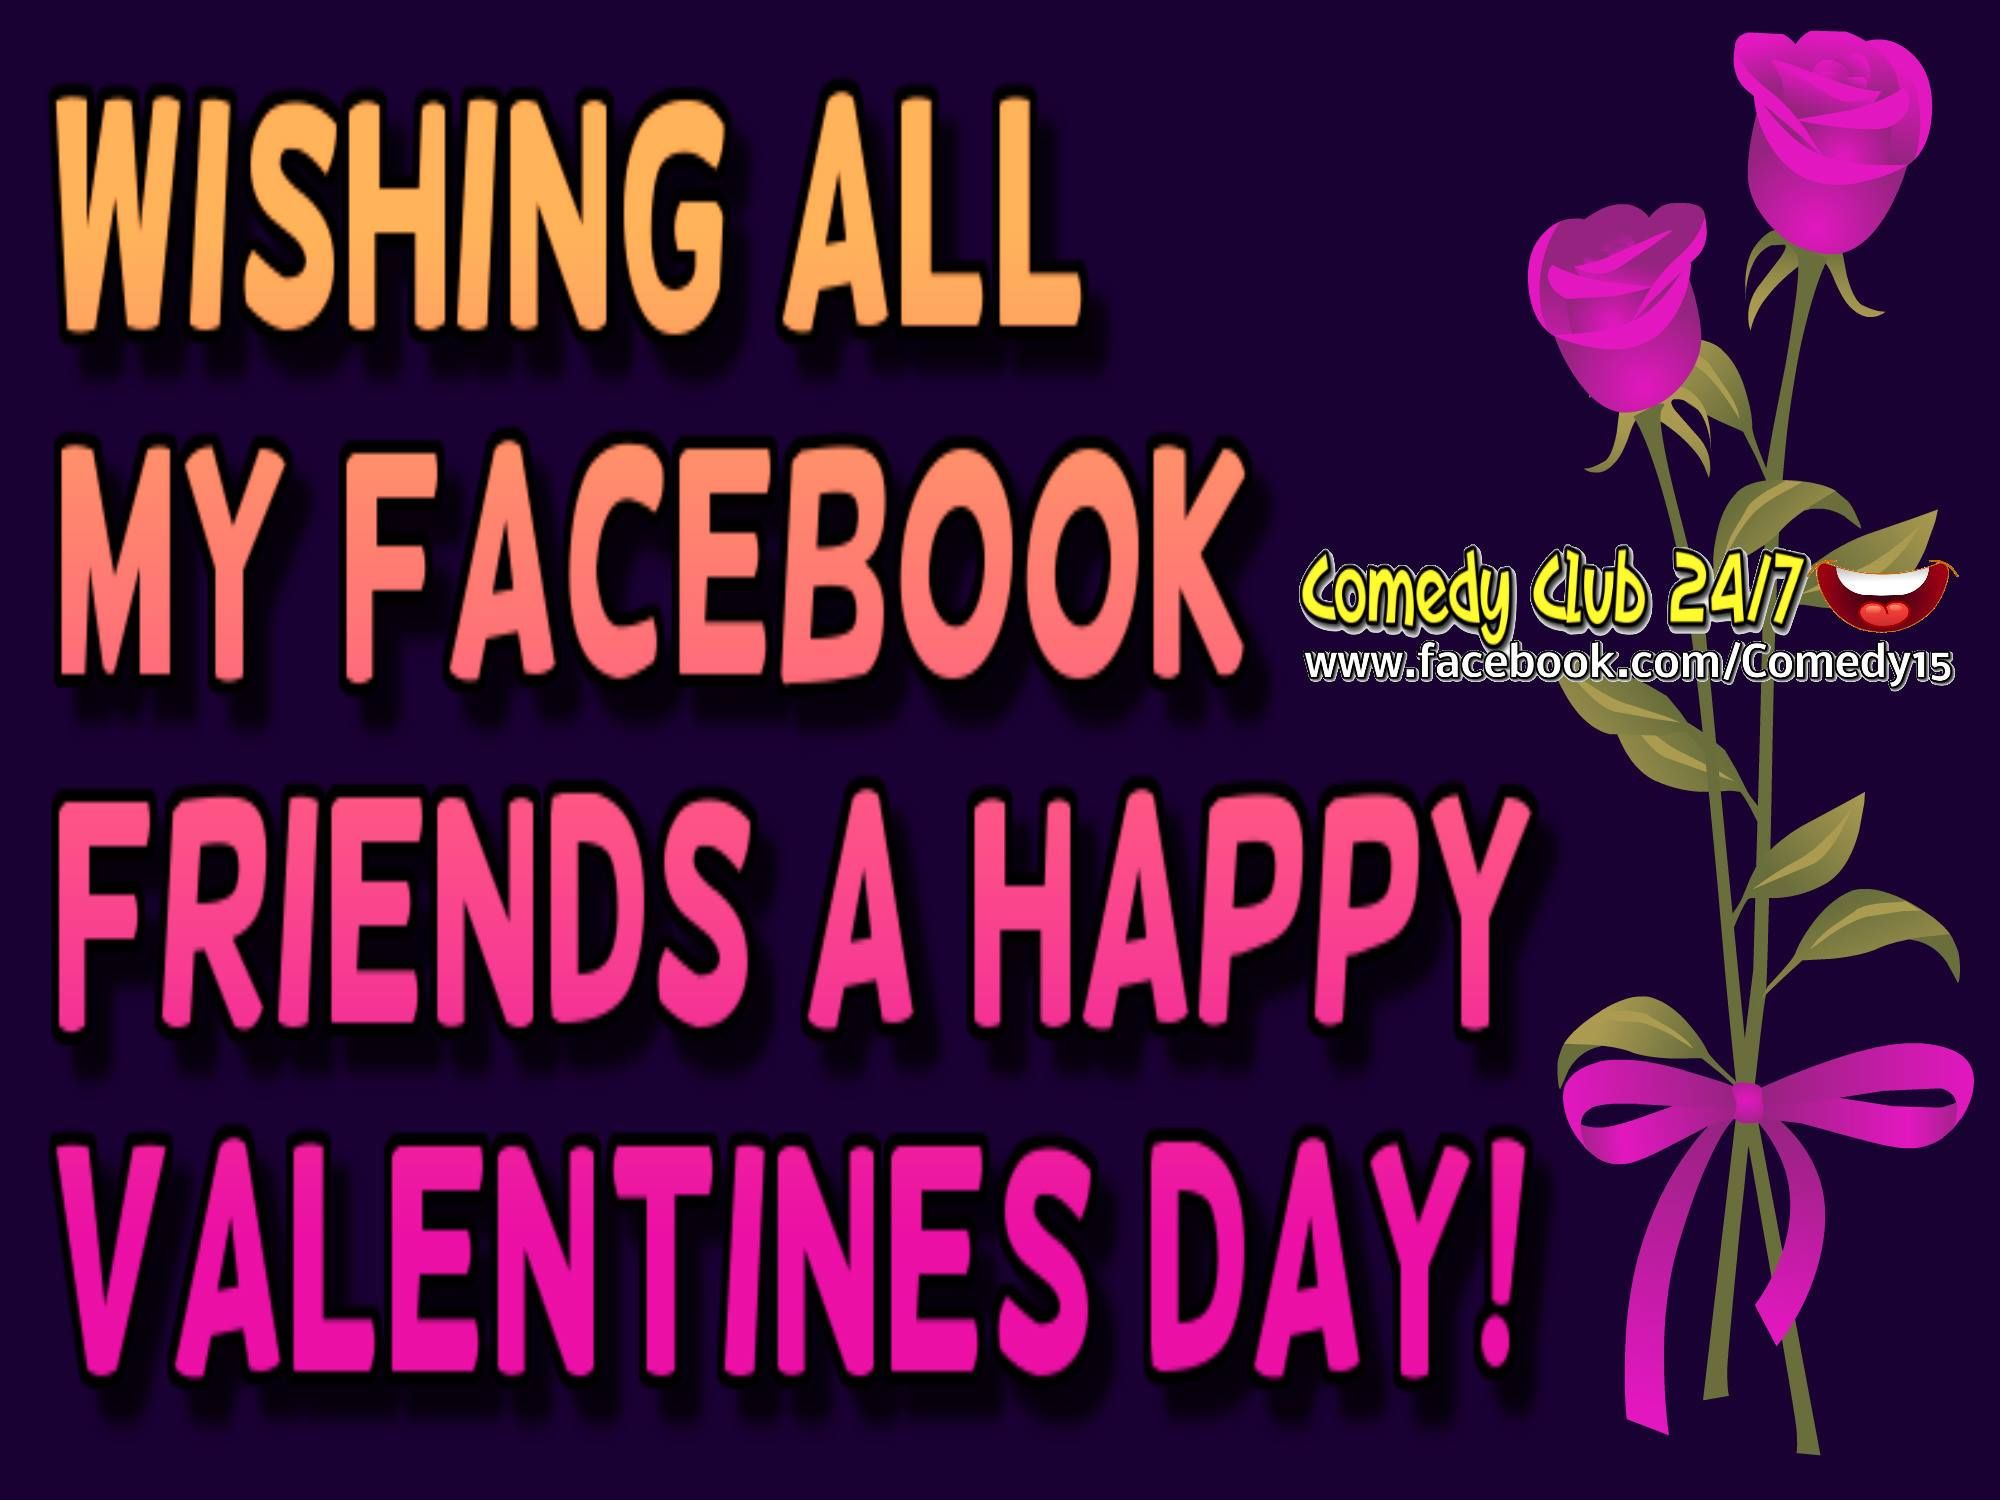 wishing all my facebook friends a happy valentine's day quote, Ideas